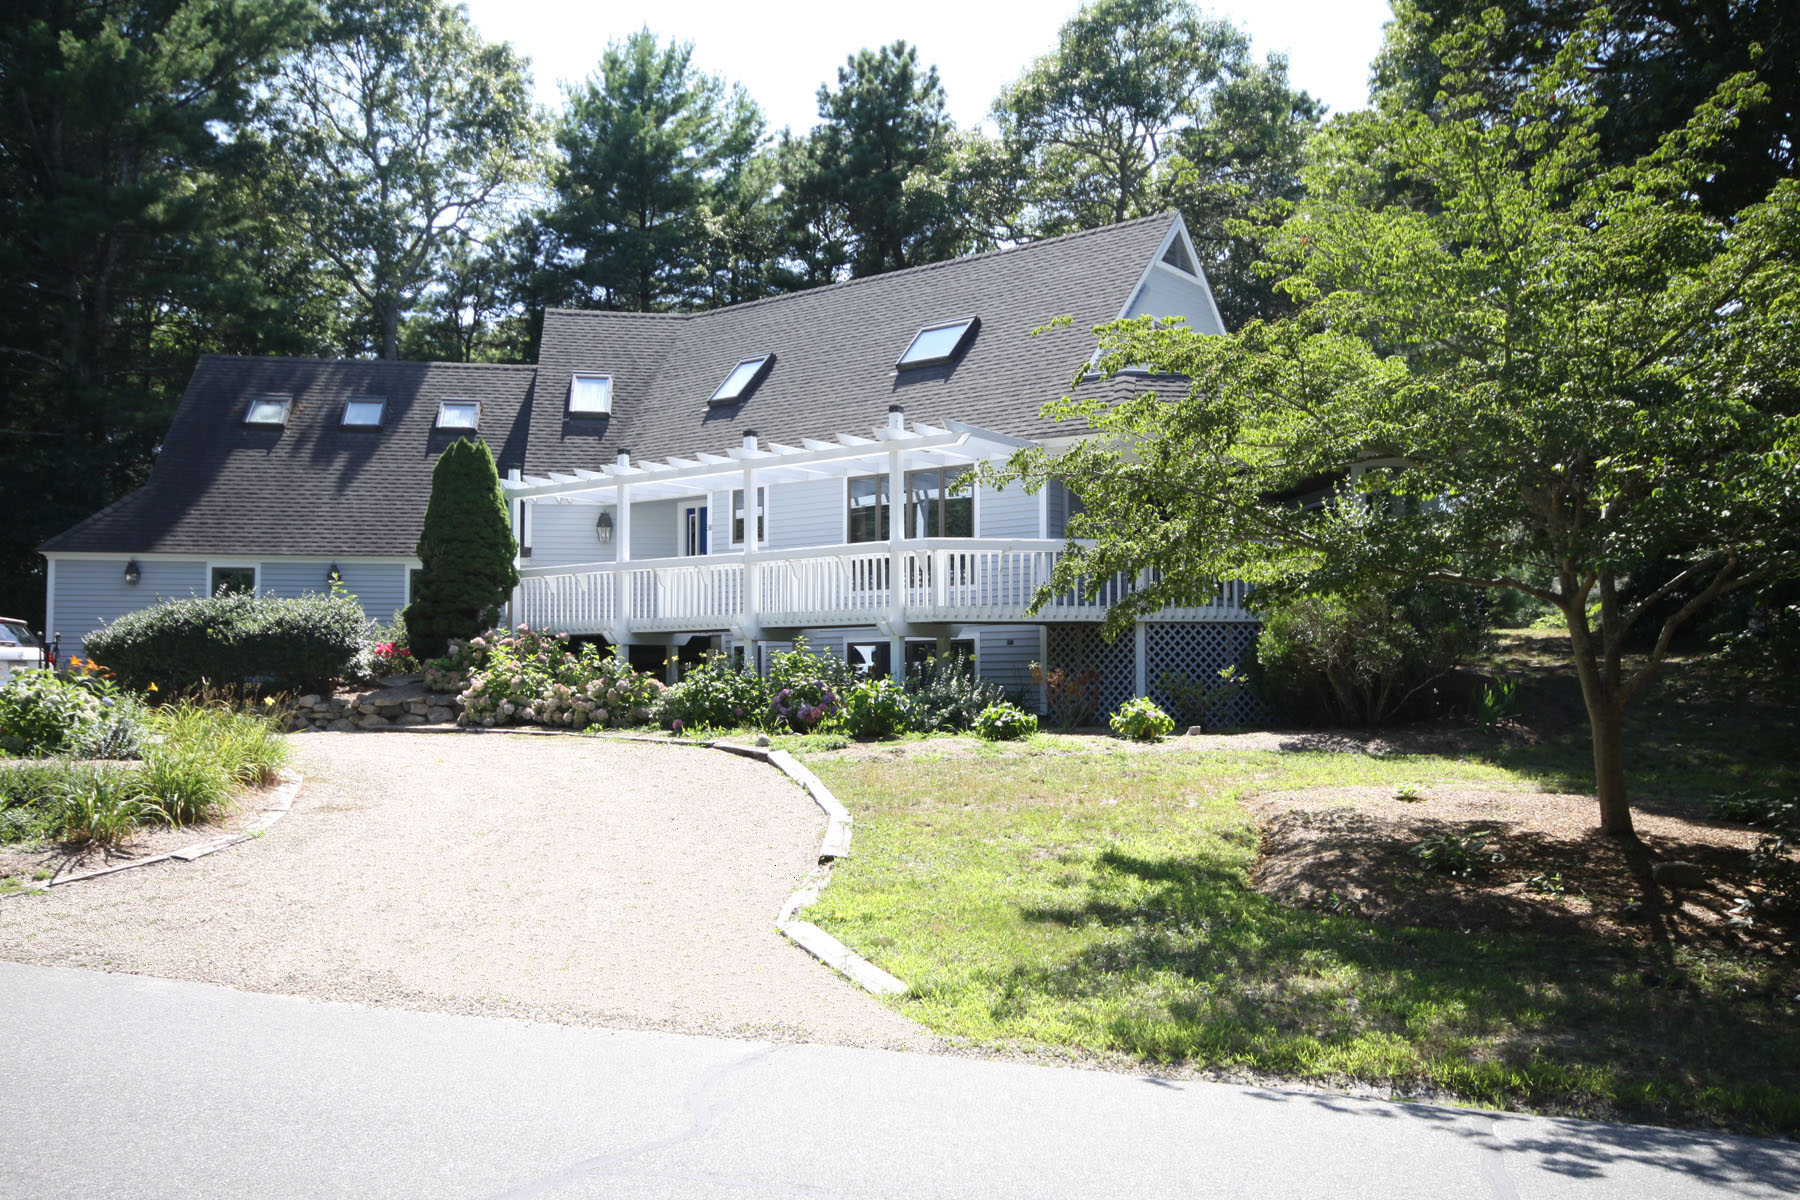 Single Family Home for Sale at A NEW SEABURY GEM 38 Bright Coves Way, New Seabury, Massachusetts, 02649 United States